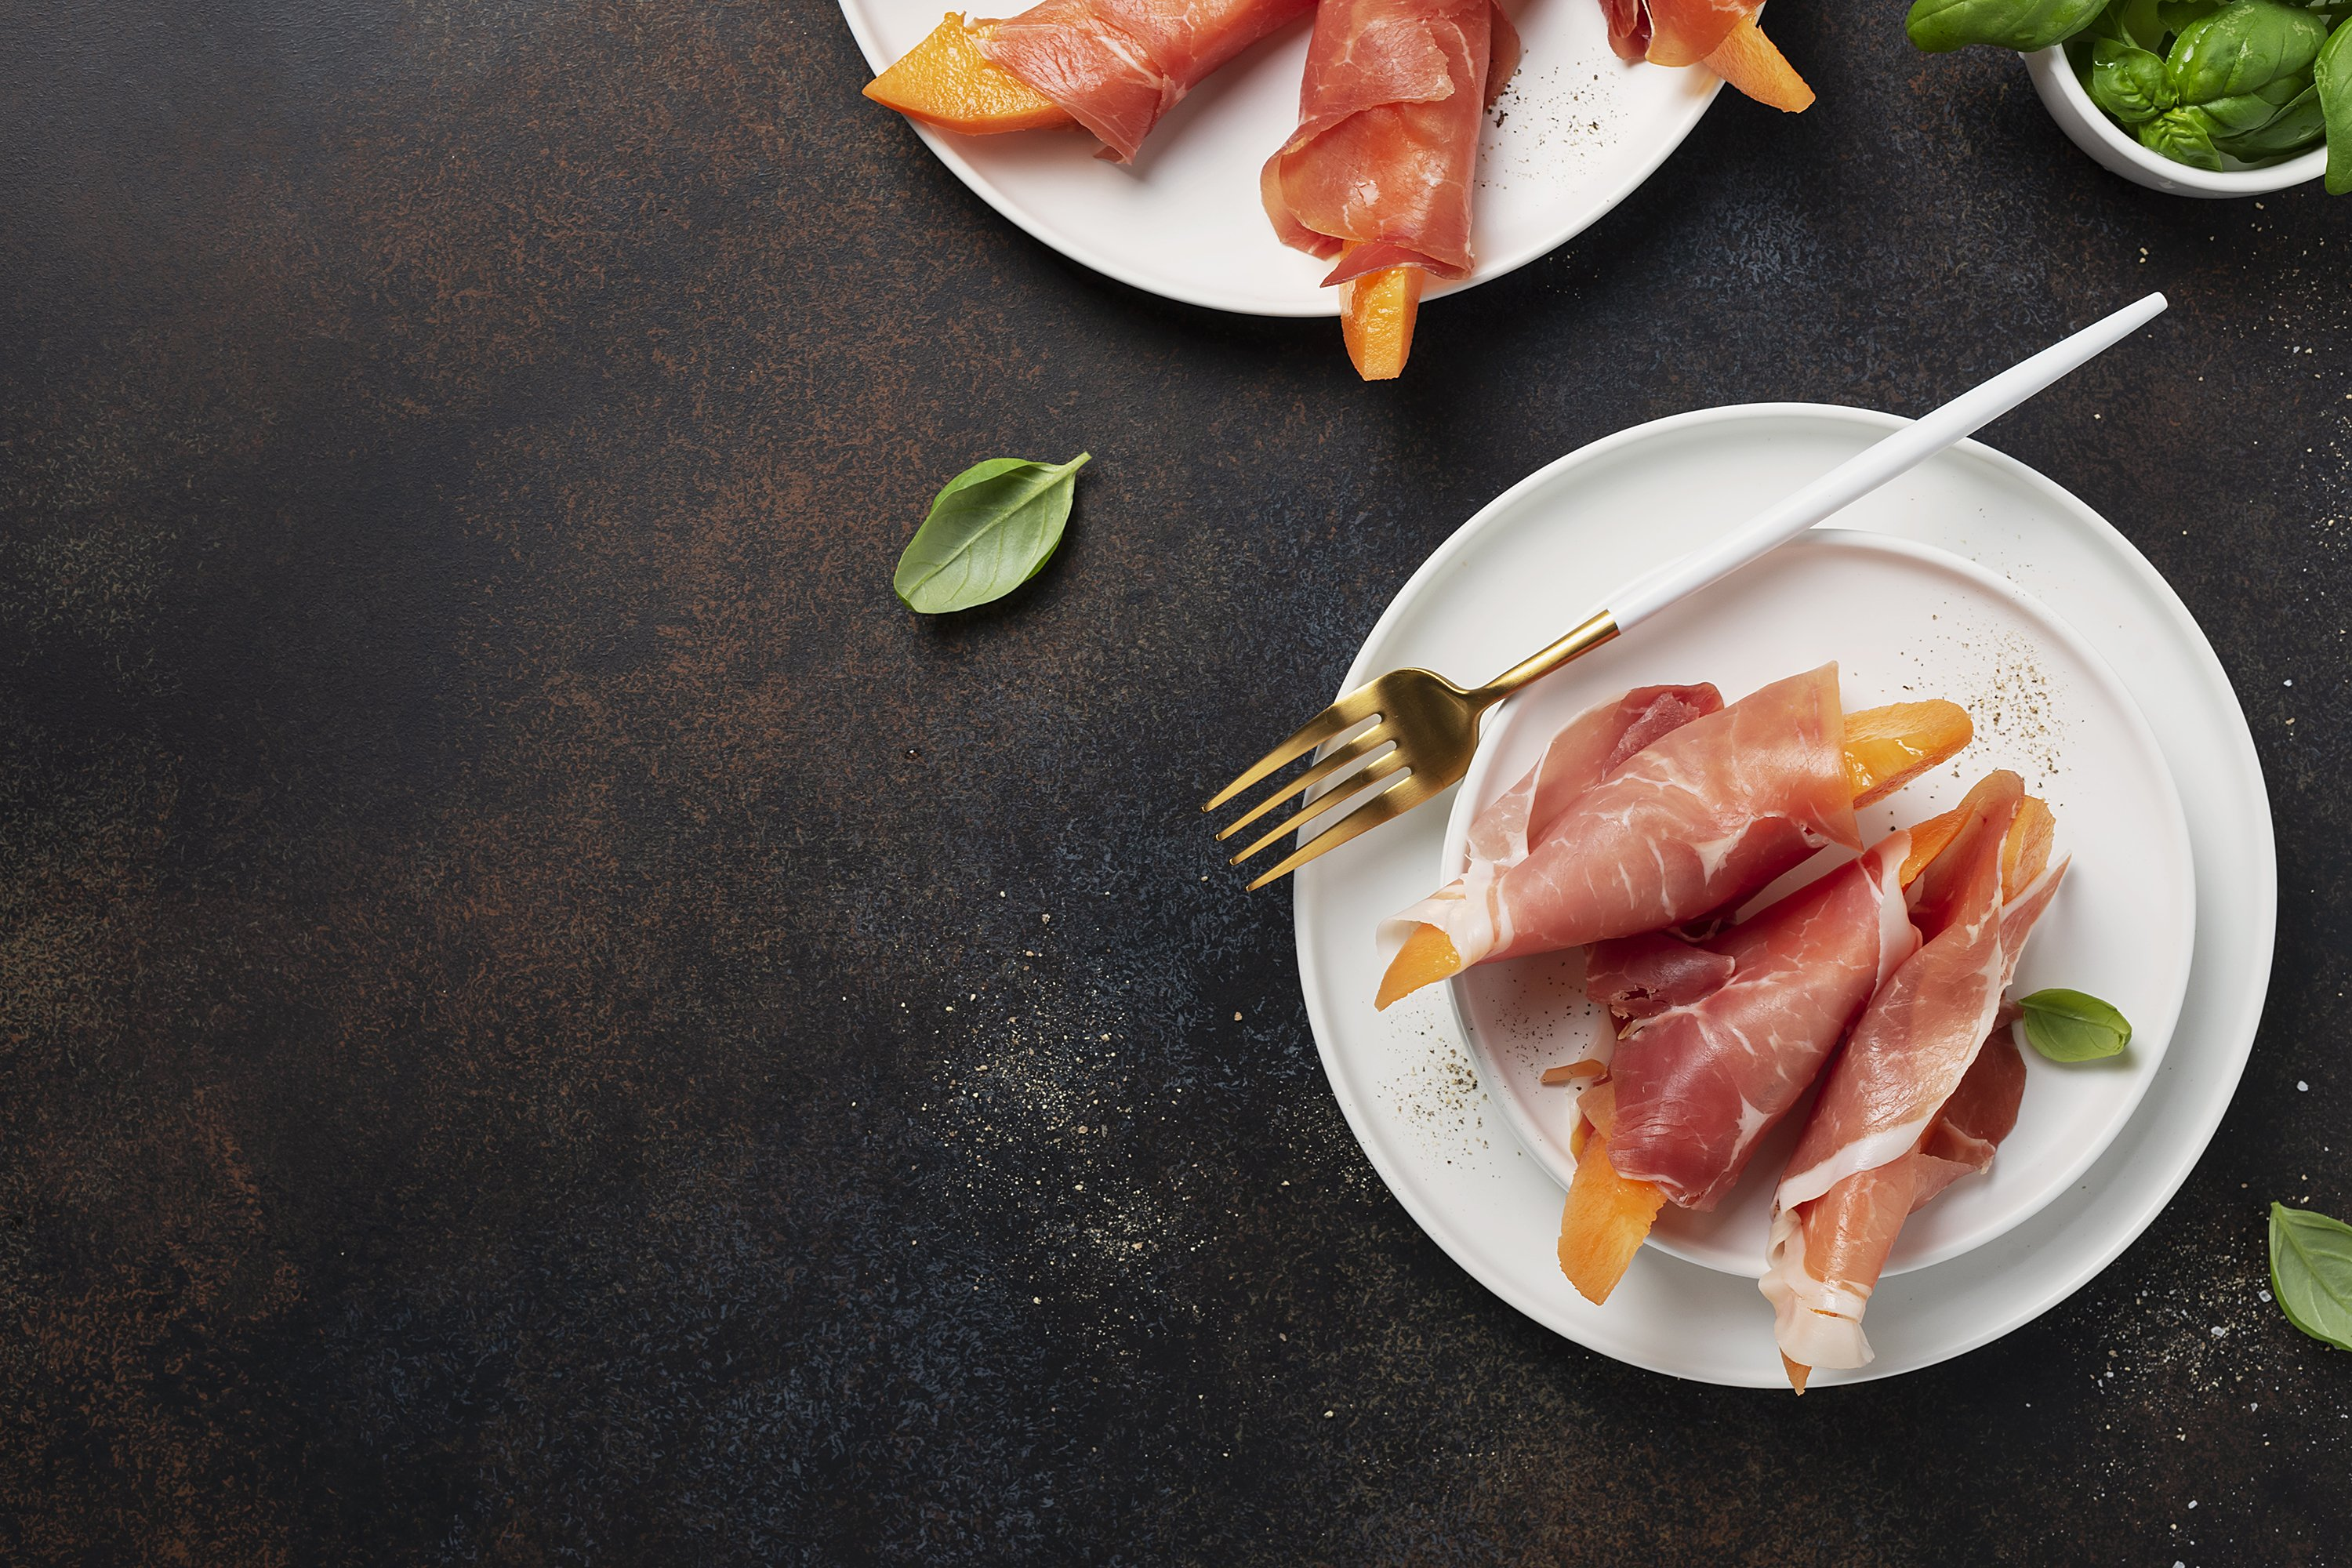 Summer appetizer with sweet melon and ham on dark background example image 1